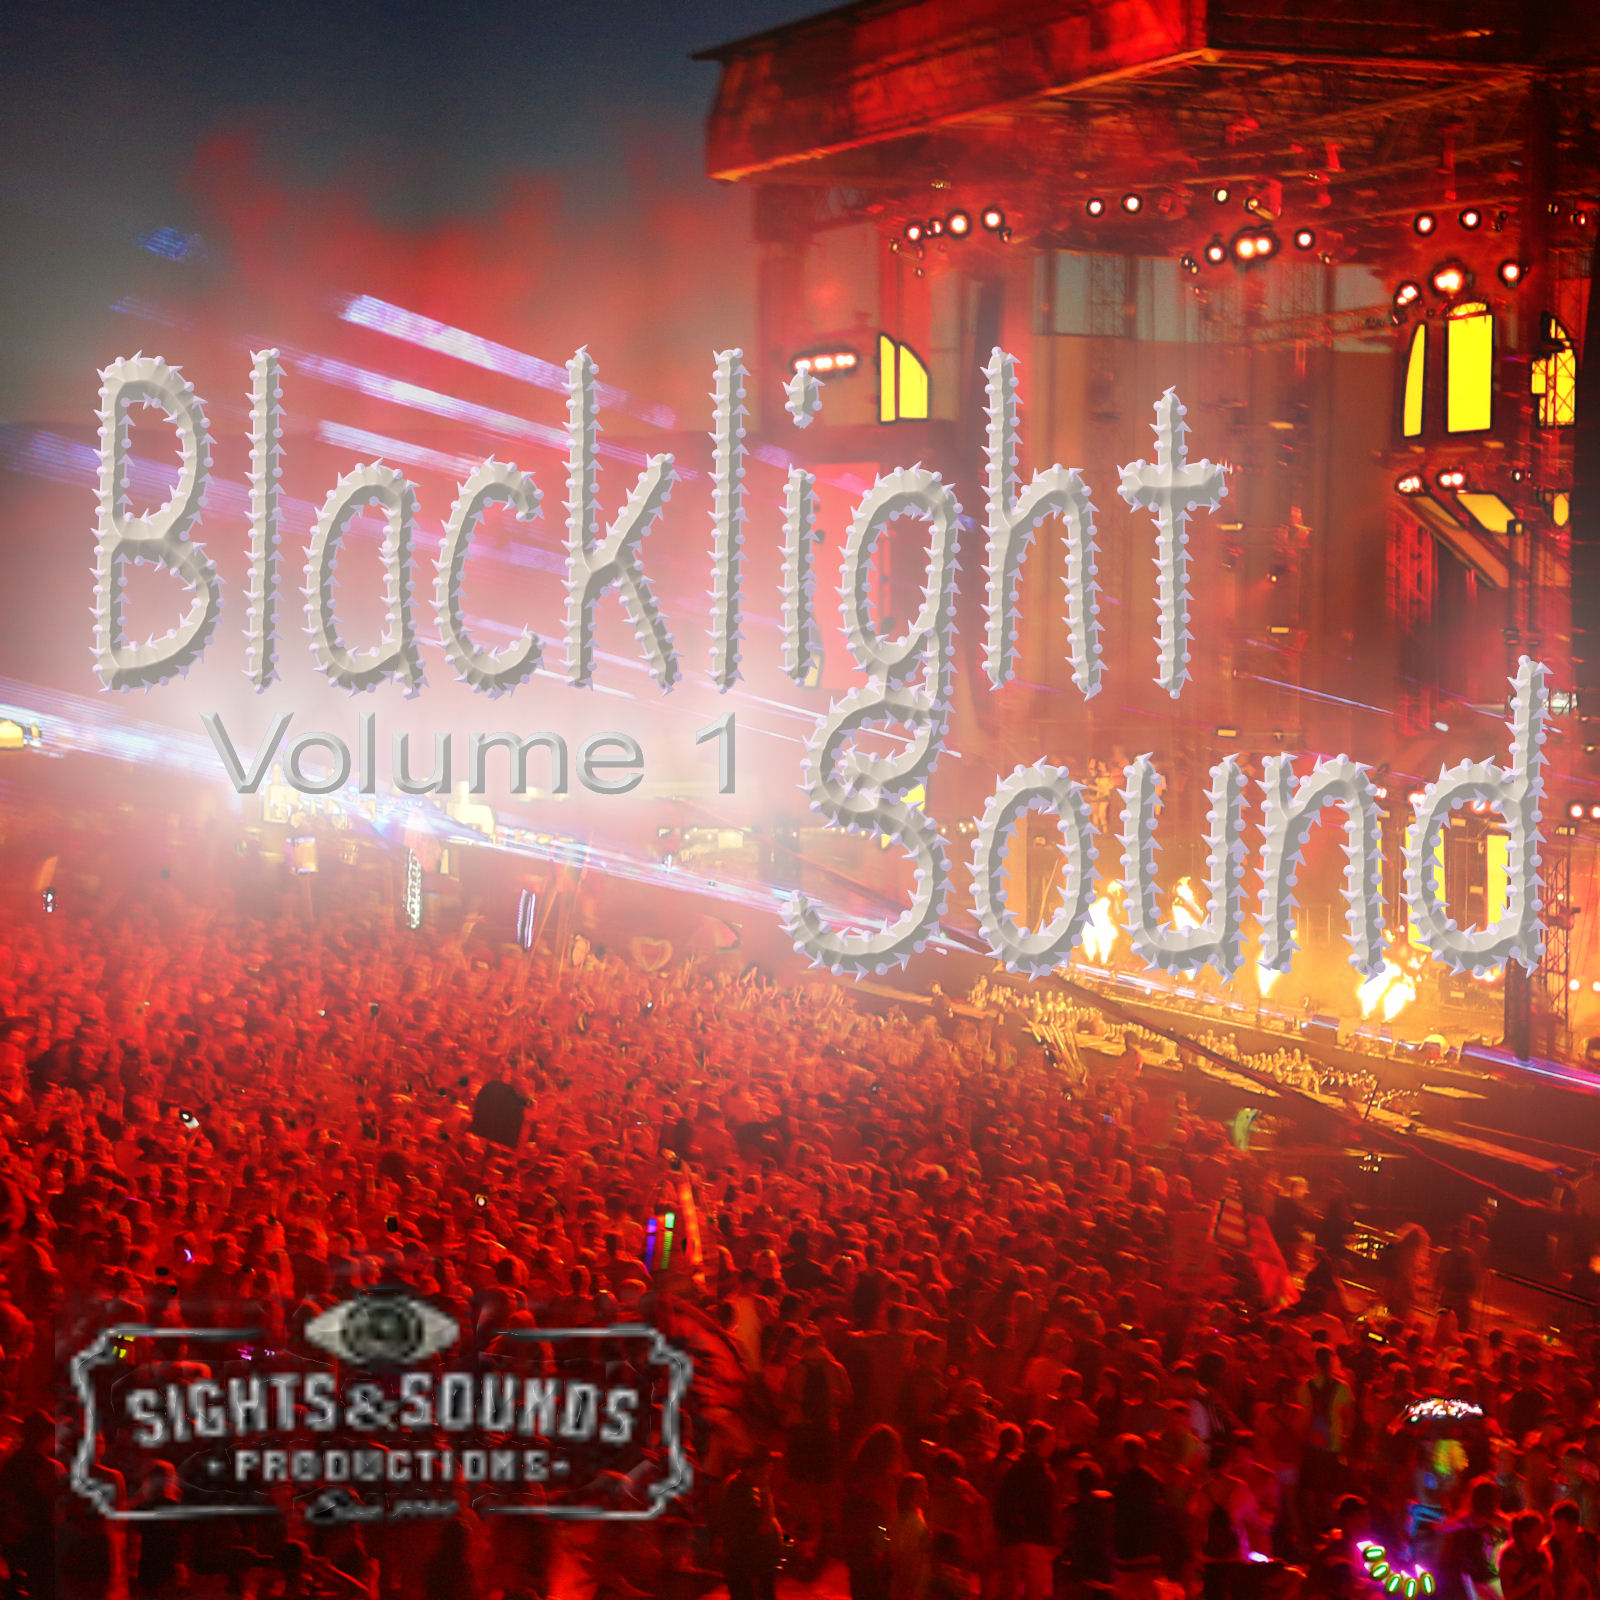 Blacklight Sounds Cover sq 1600x1600